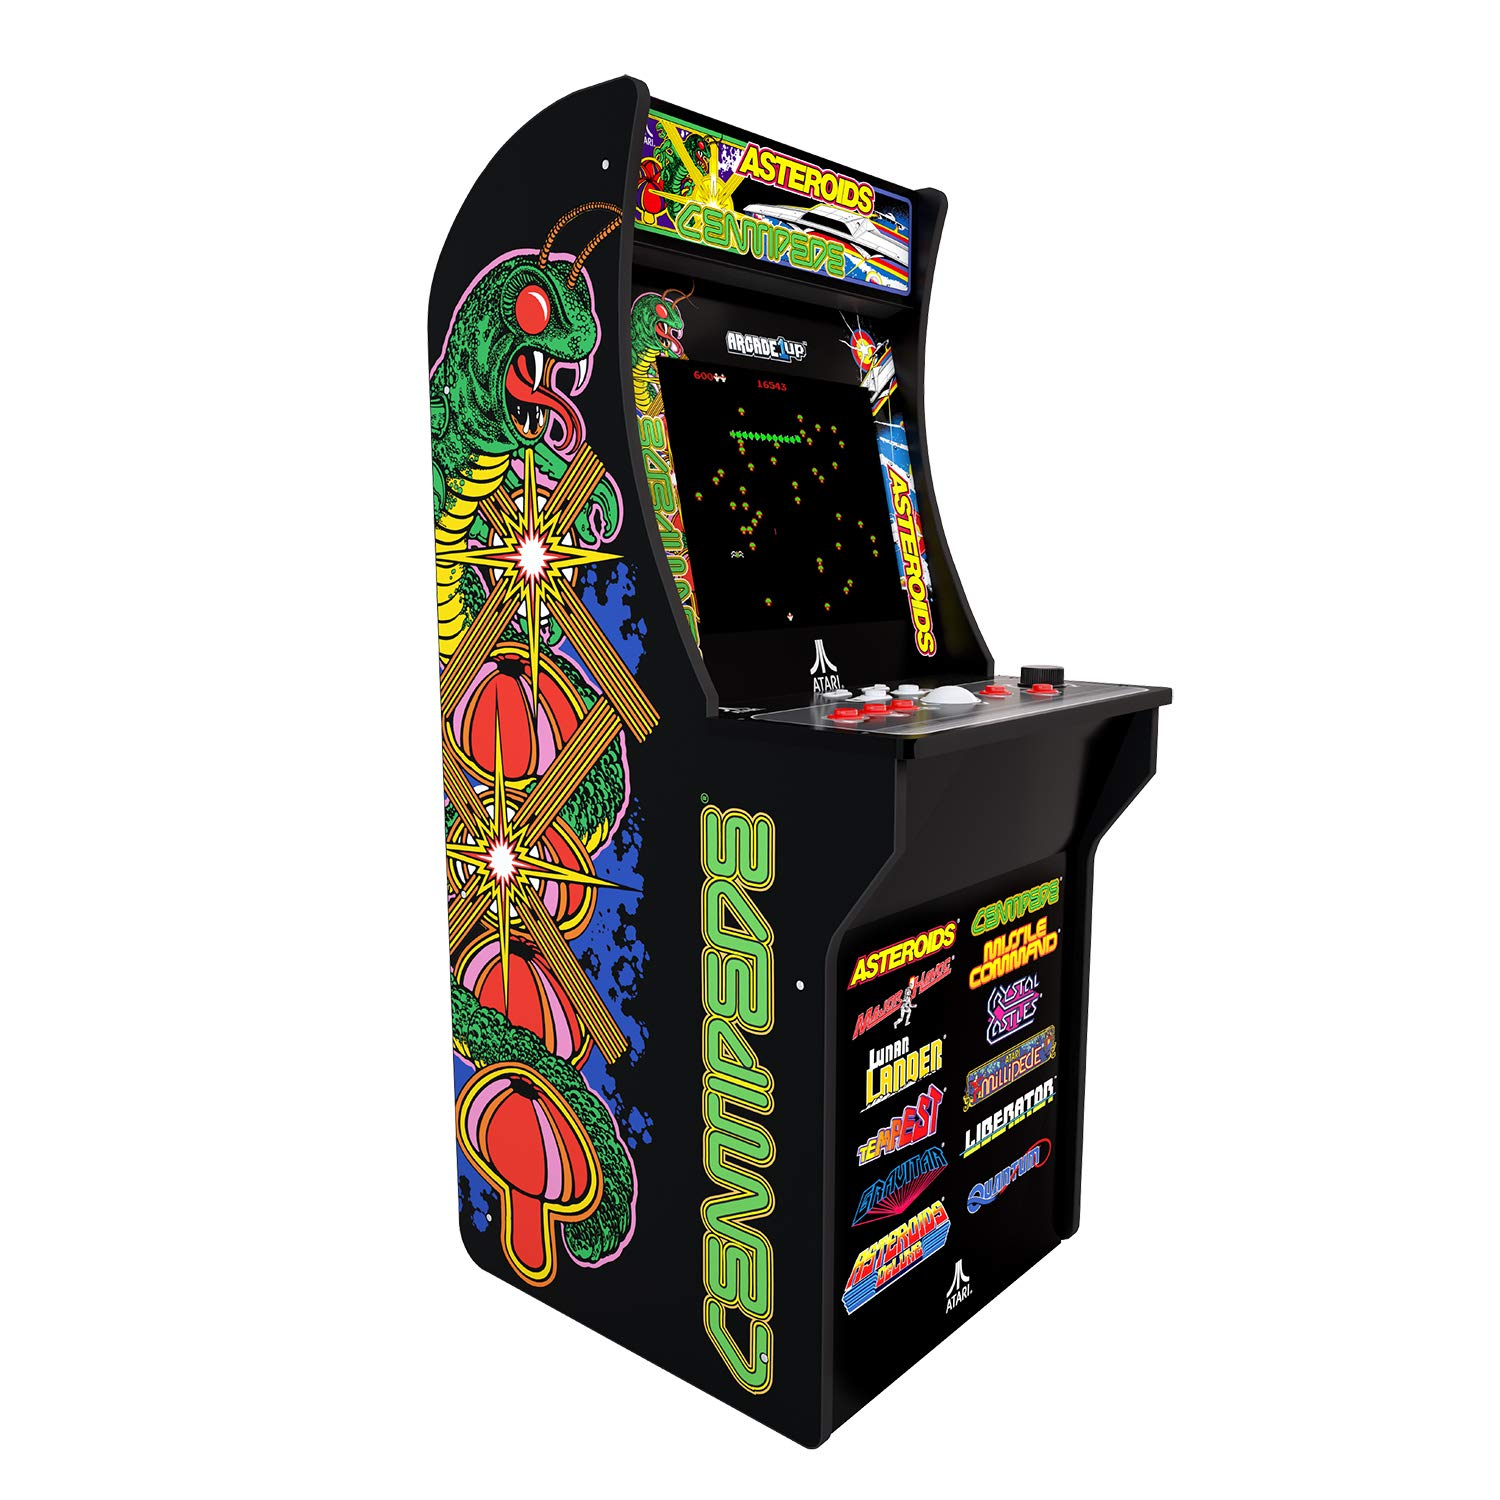 Arcade1Up Deluxe Edition 12-in-1 Arcade Cabinet with Riser, 5 feet by Arcade1Up